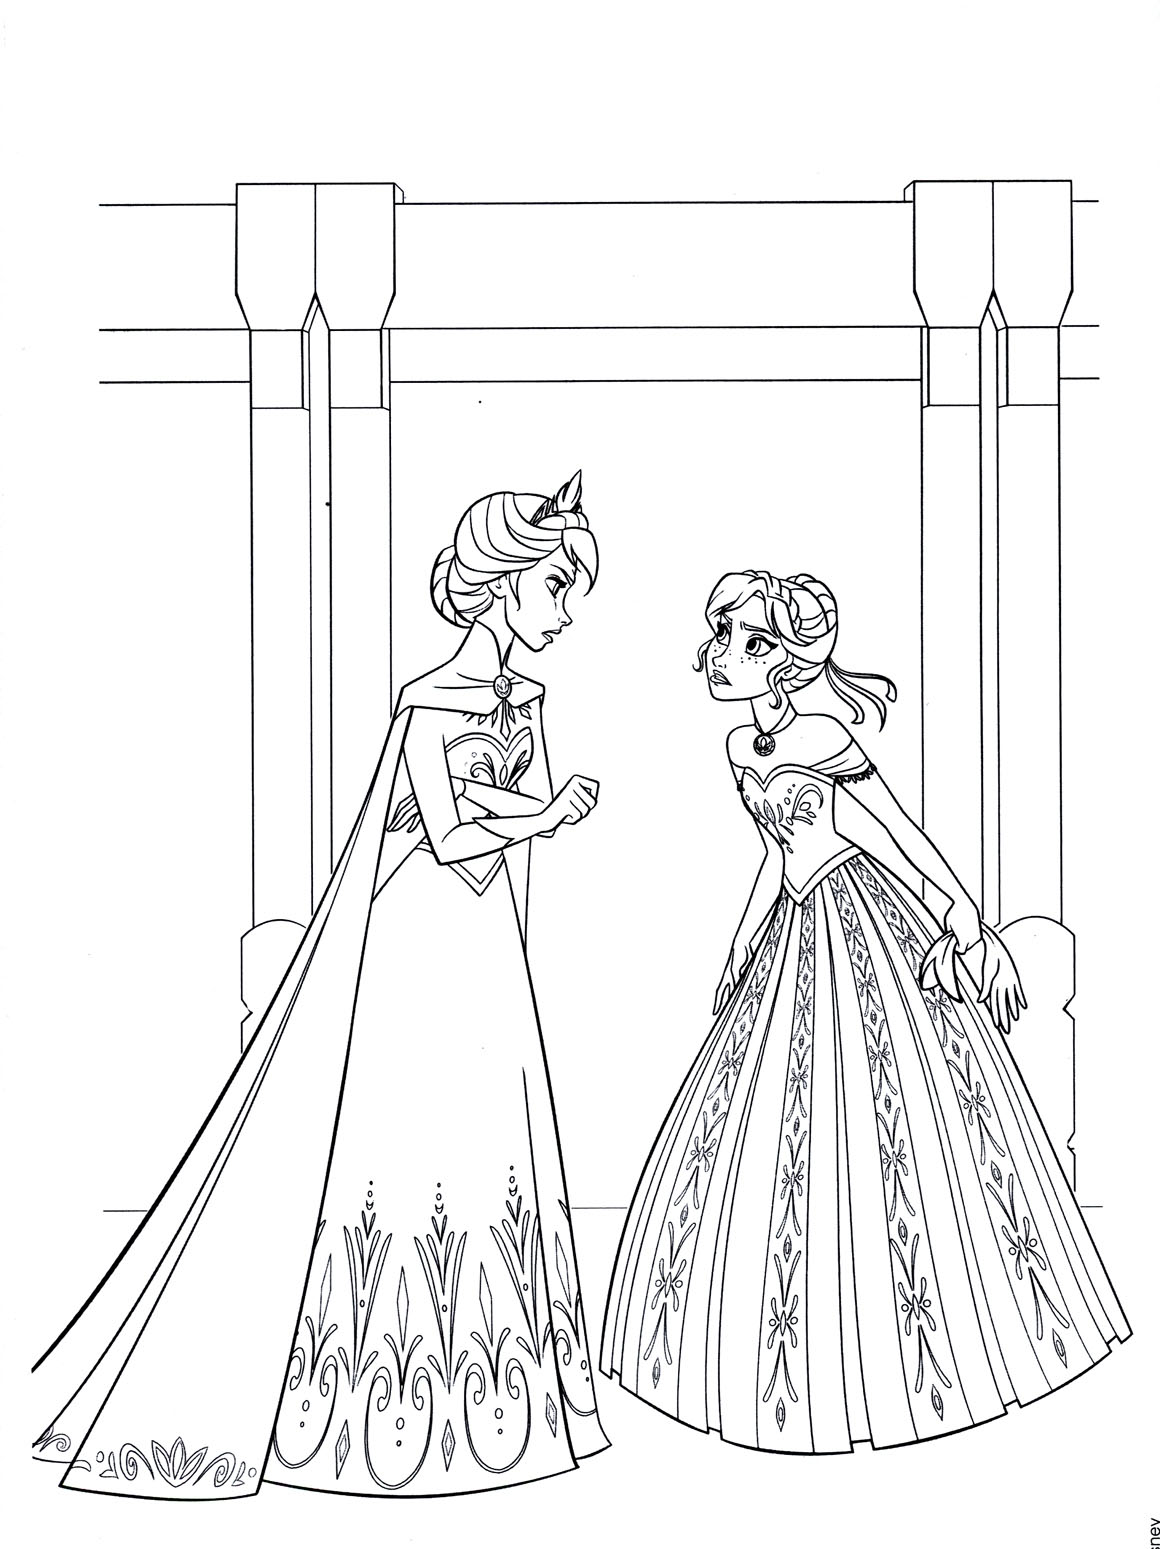 Free Frozen coloring page to download : Anna & Elsa with the two princesses